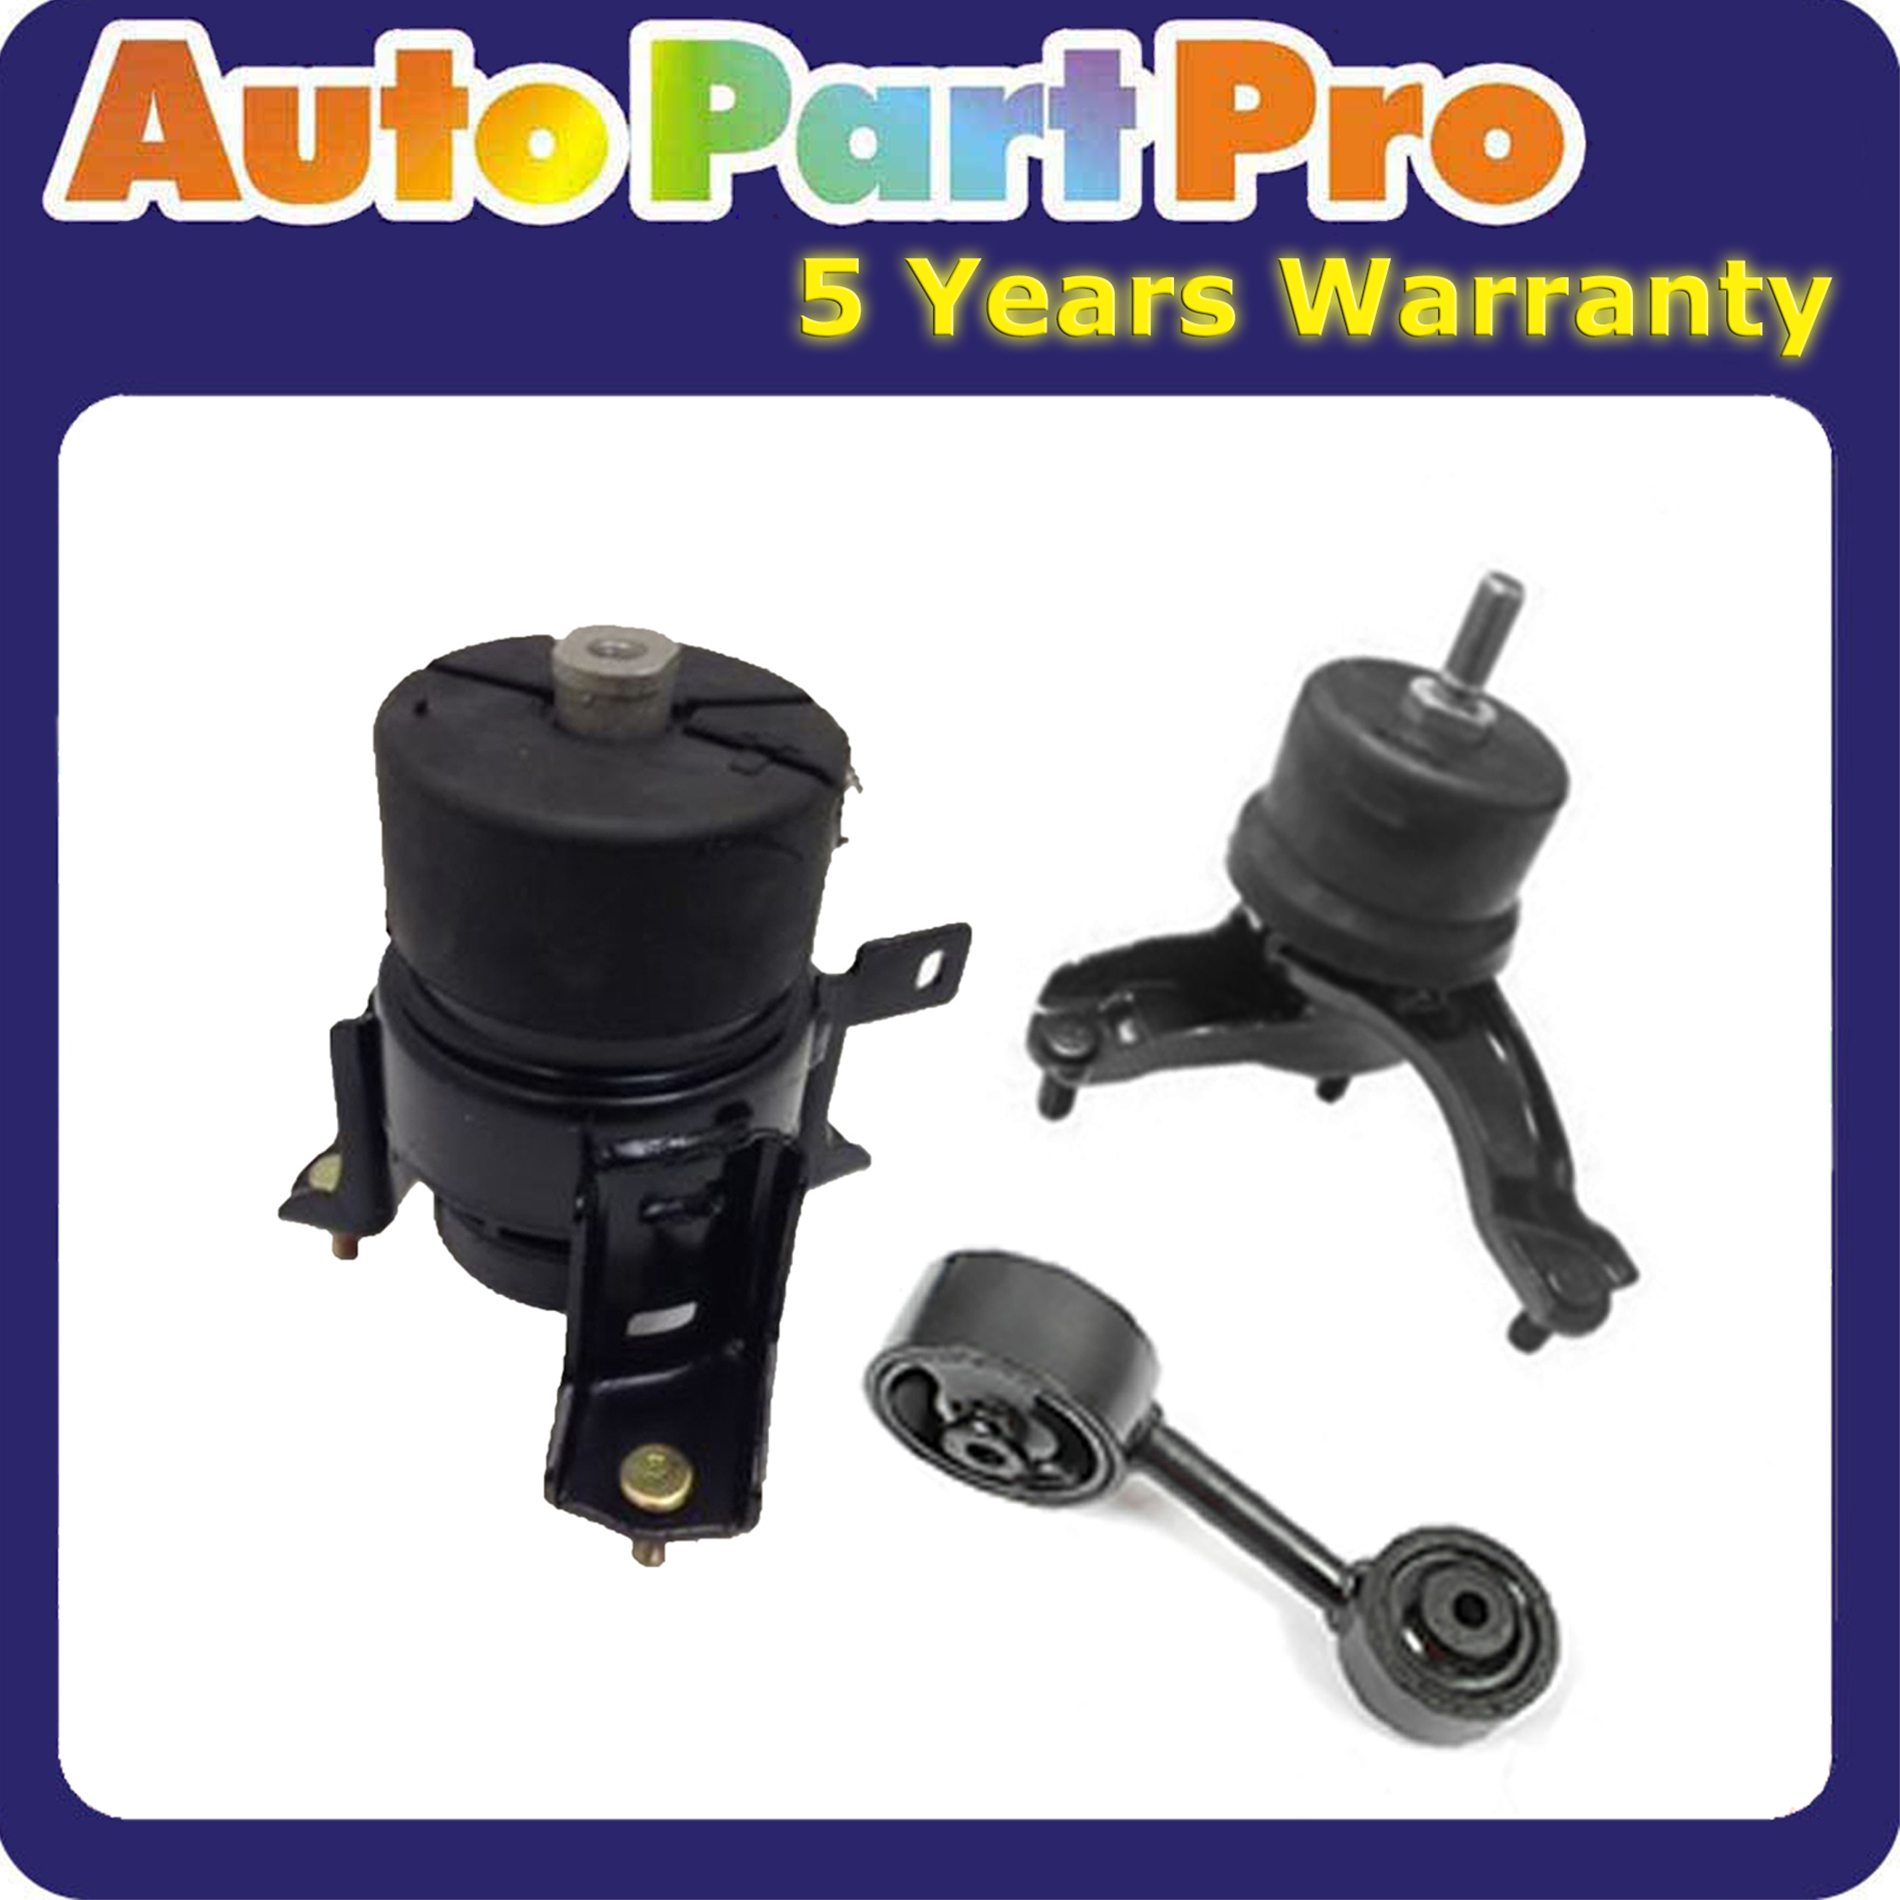 New For 2001-2003 Toyota Highlander 3.0L 4287 Right Engine Motor Mount New